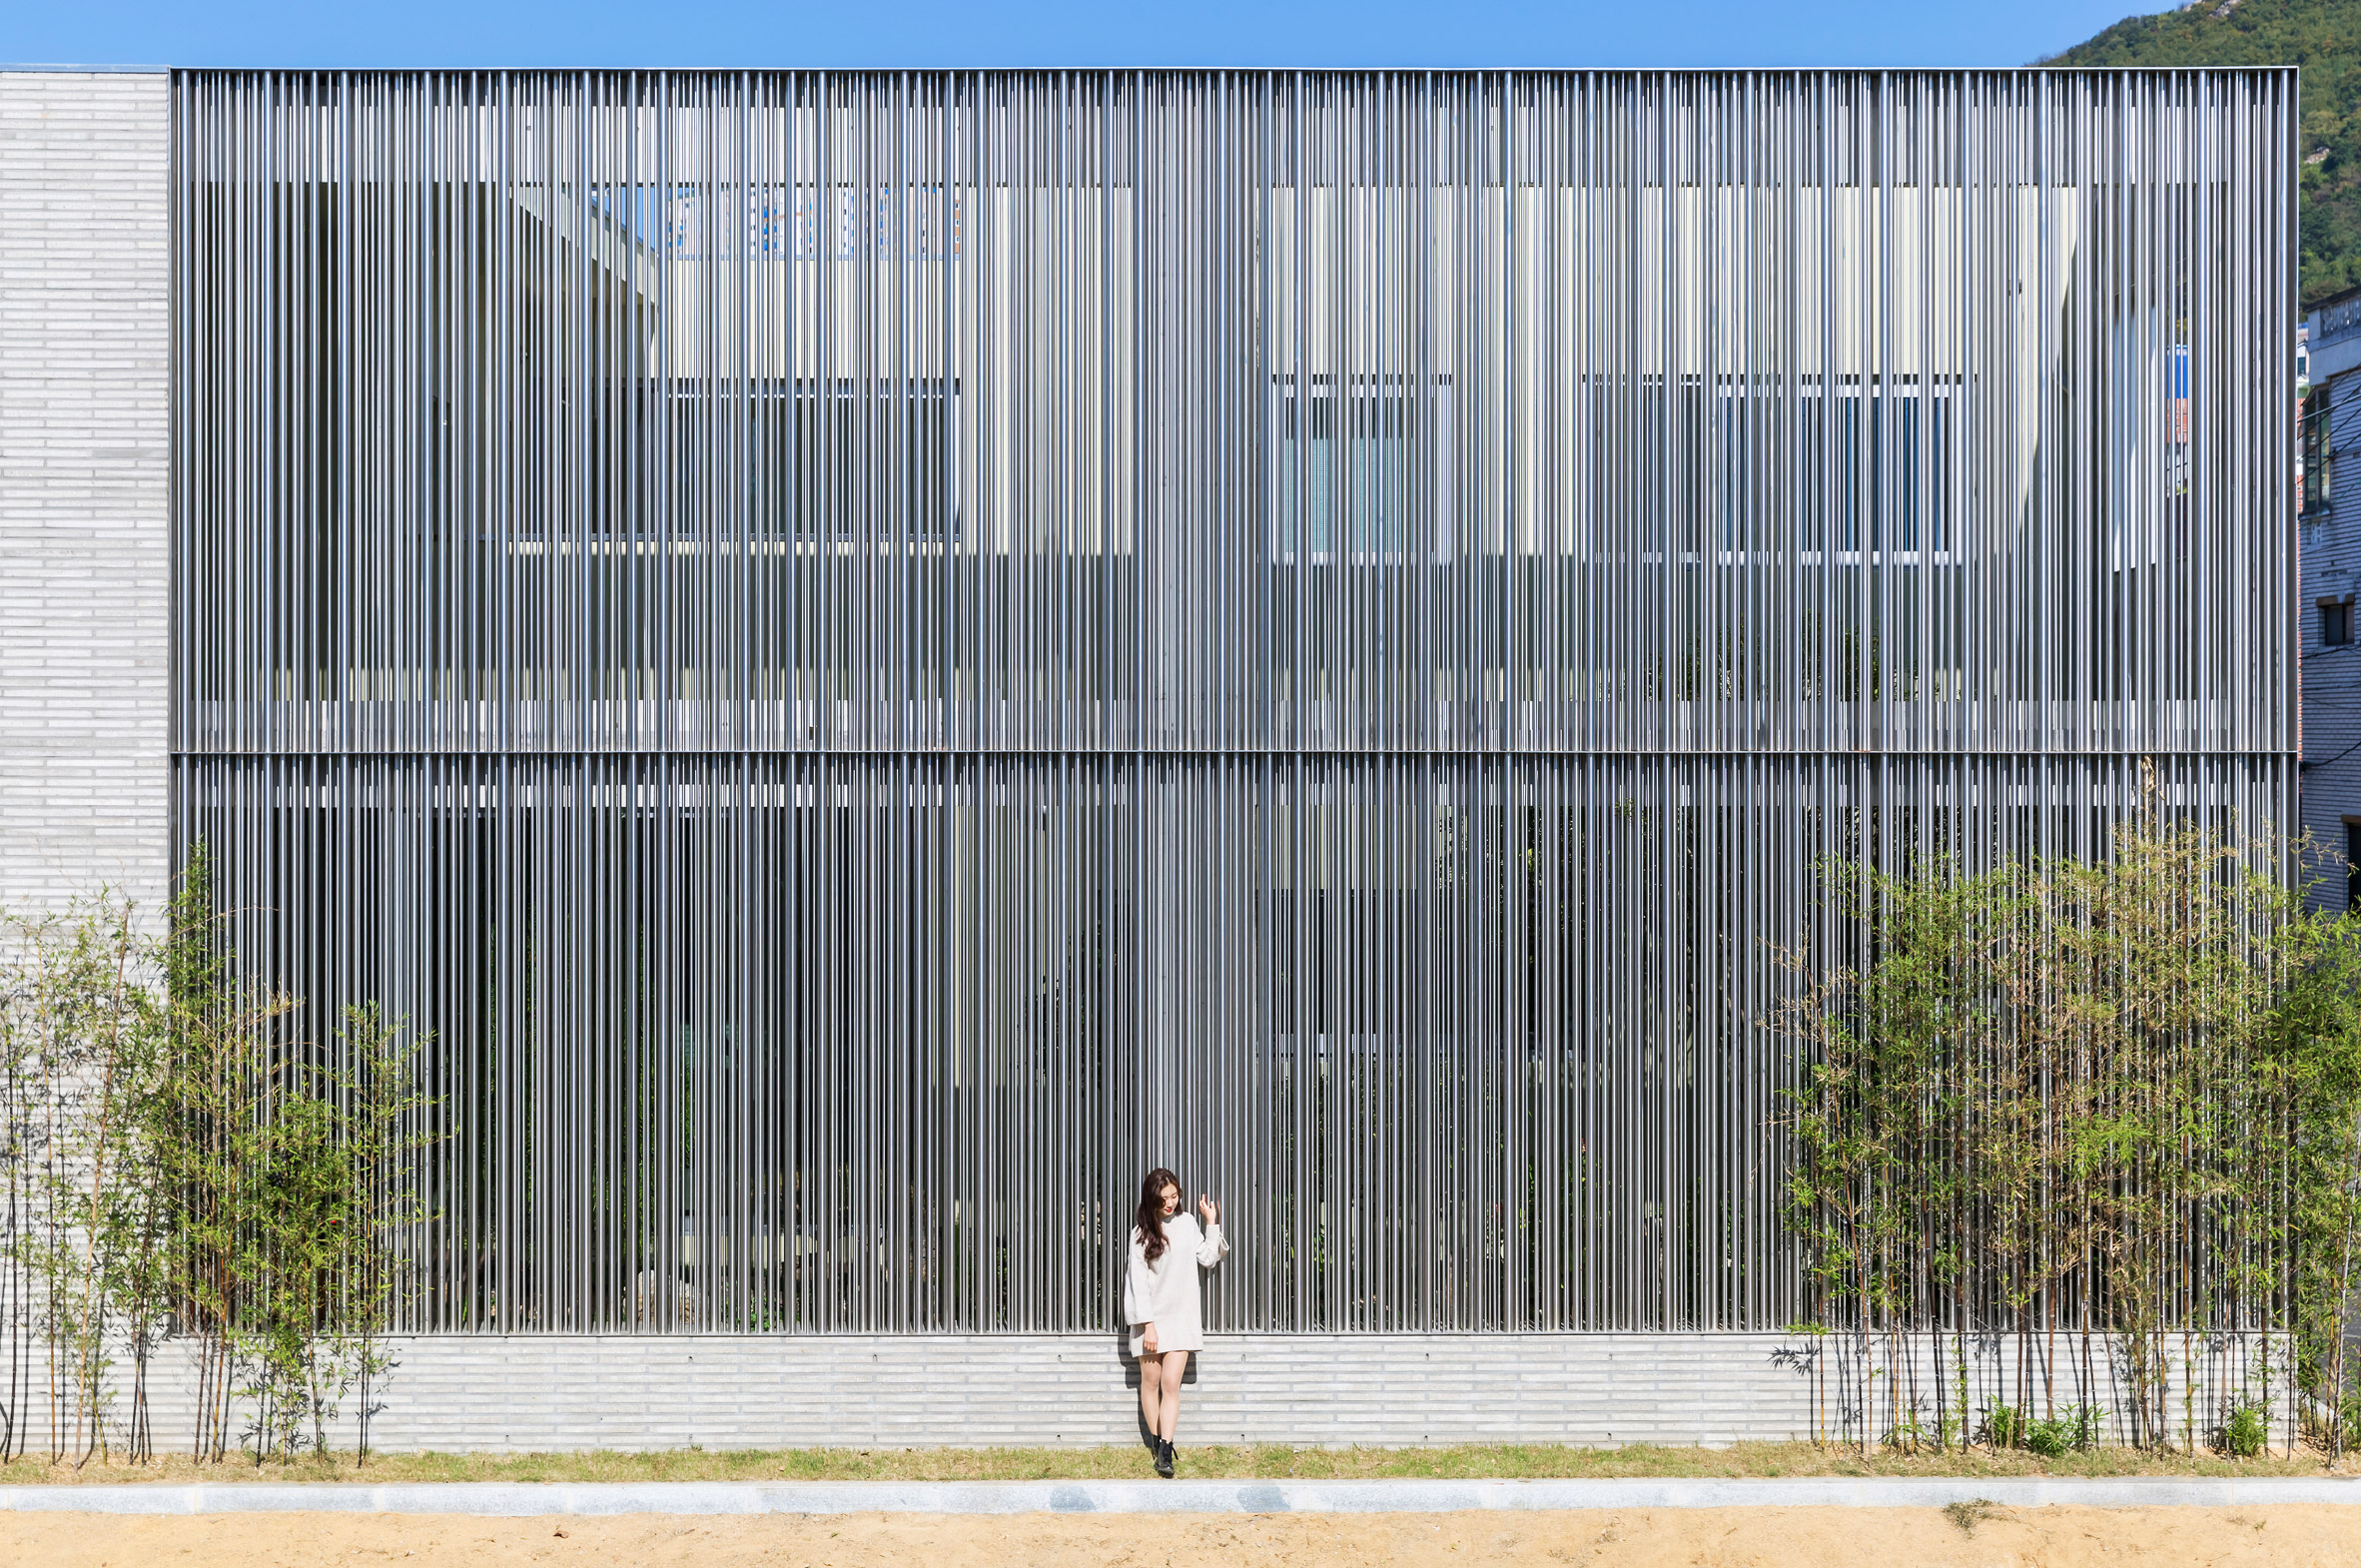 steel-grove-augmented-reality-architecture-residential-south-korea-courtyards-steel_dezeen_2364_col_7.jpg